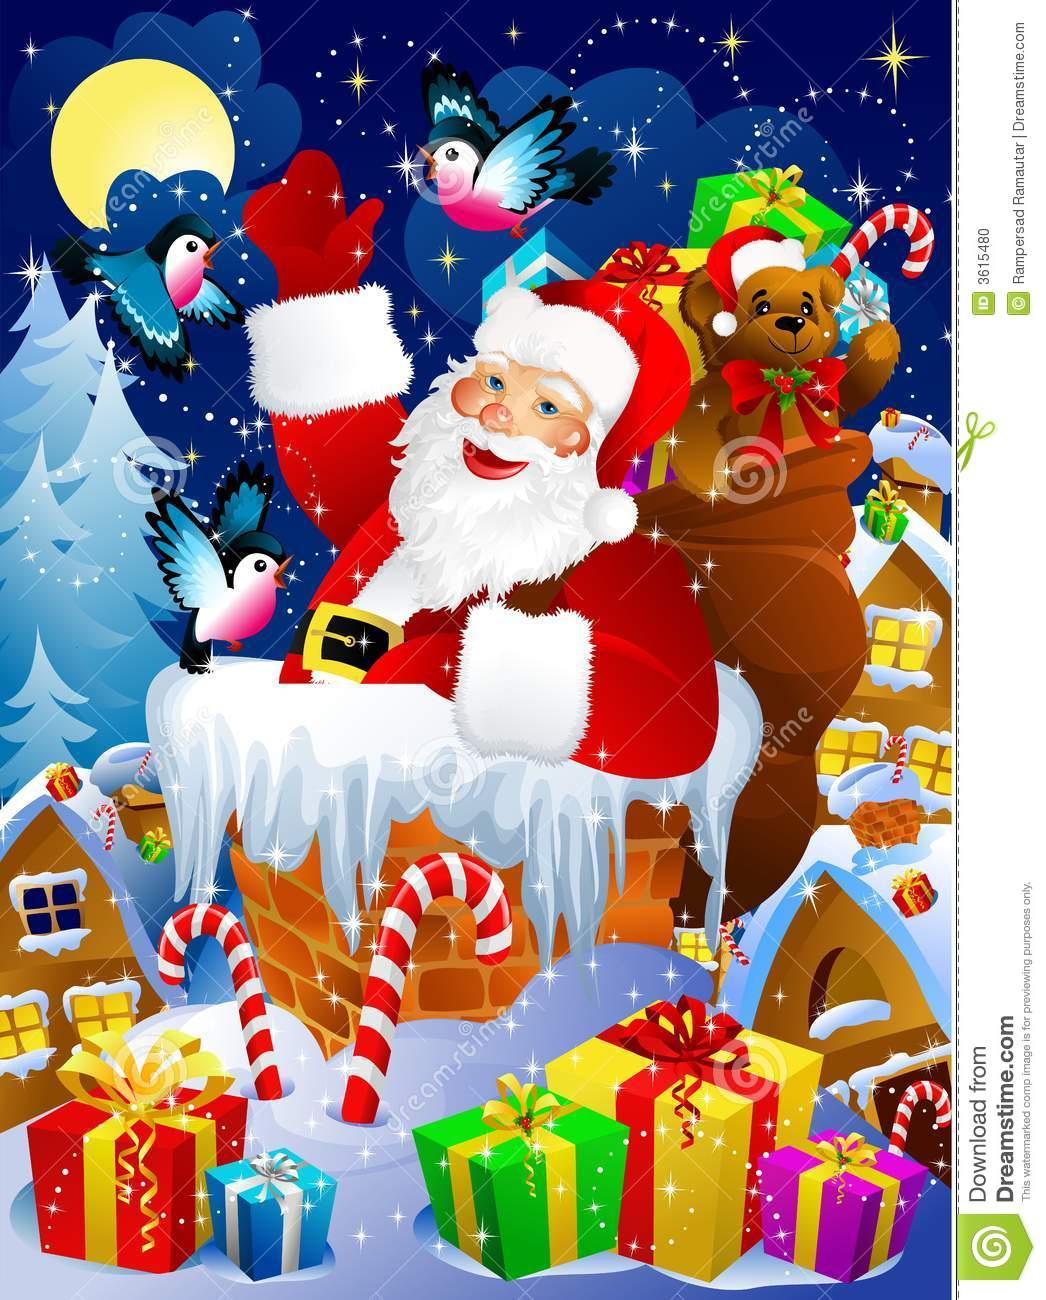 Christmas night scene with Santa Claus in chimney with presents.